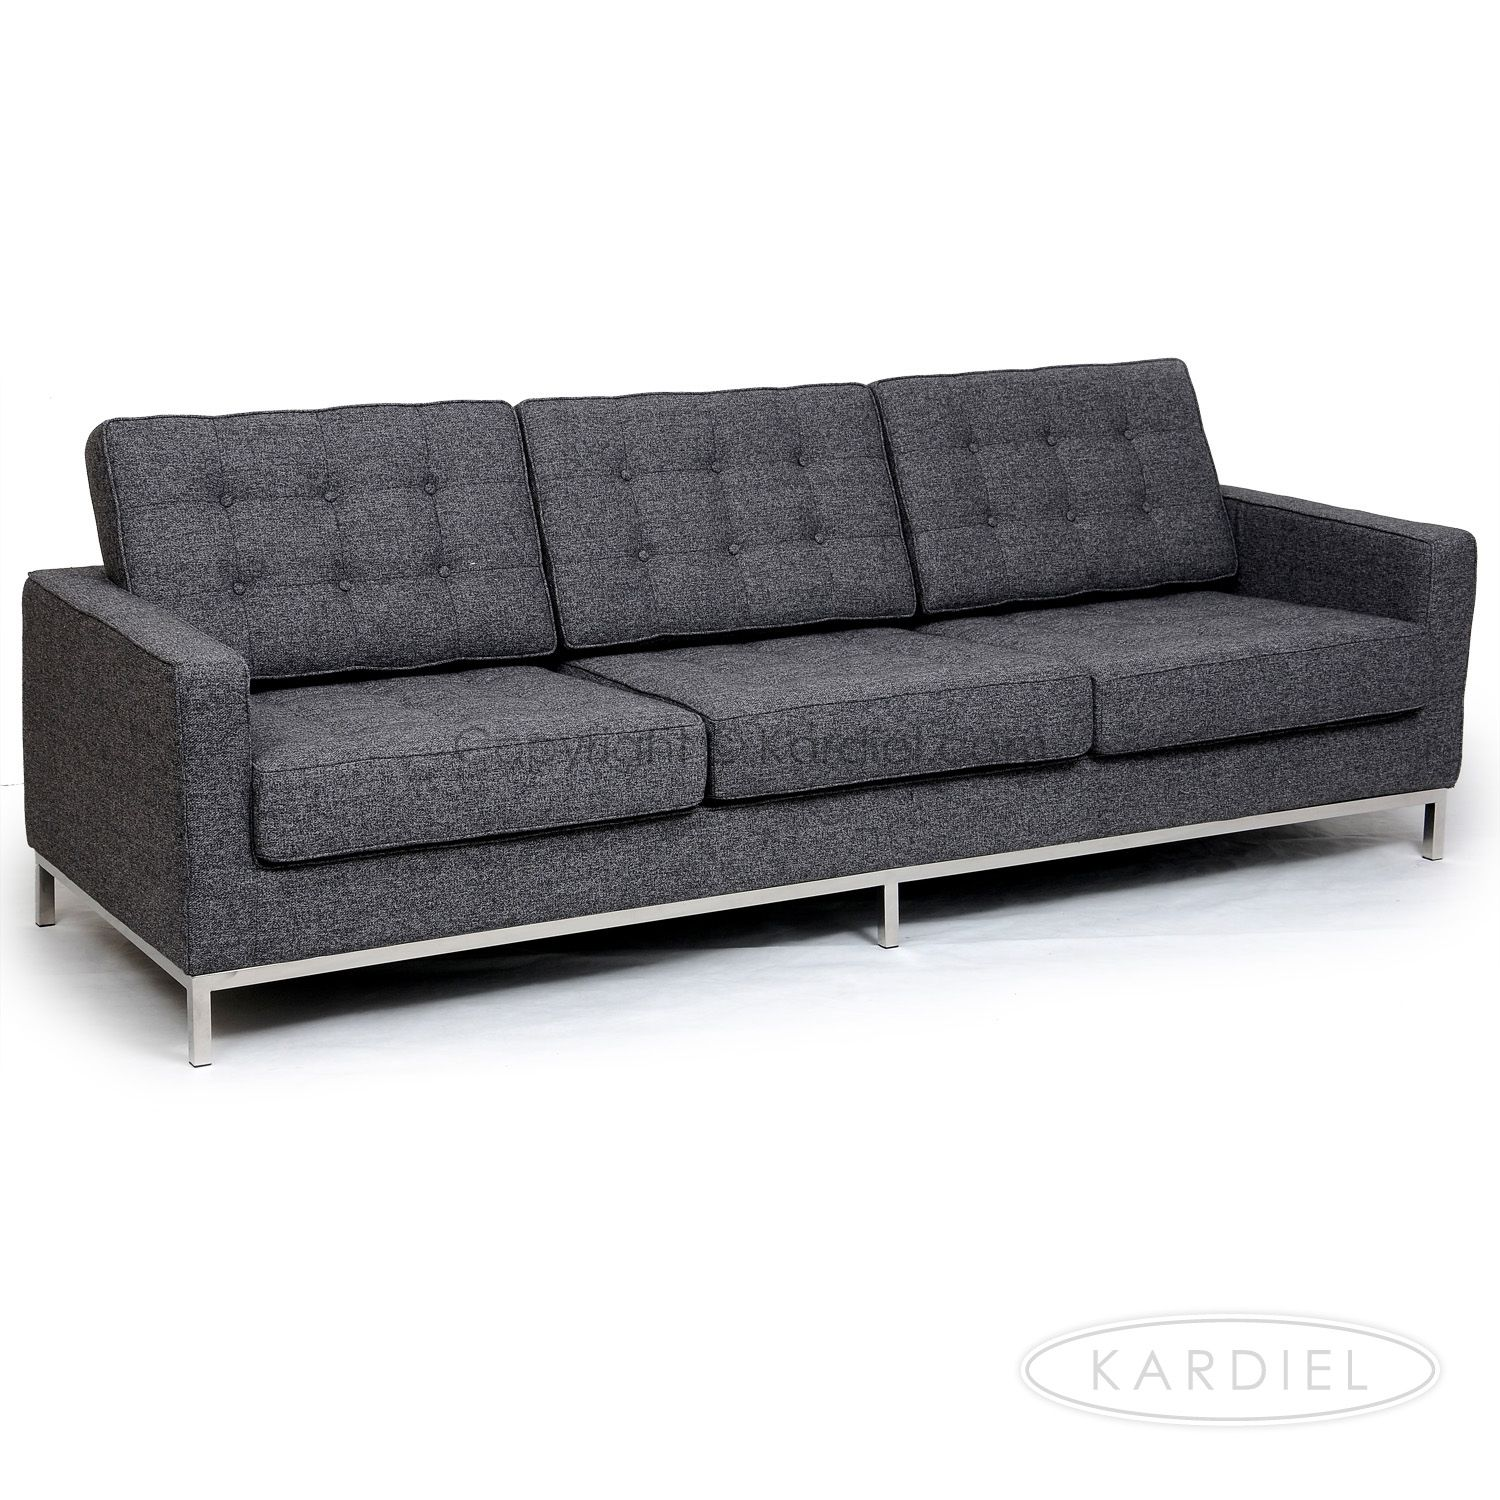 Houndstooth sleeper sofa baci living room for Encore home designs by craftmaster